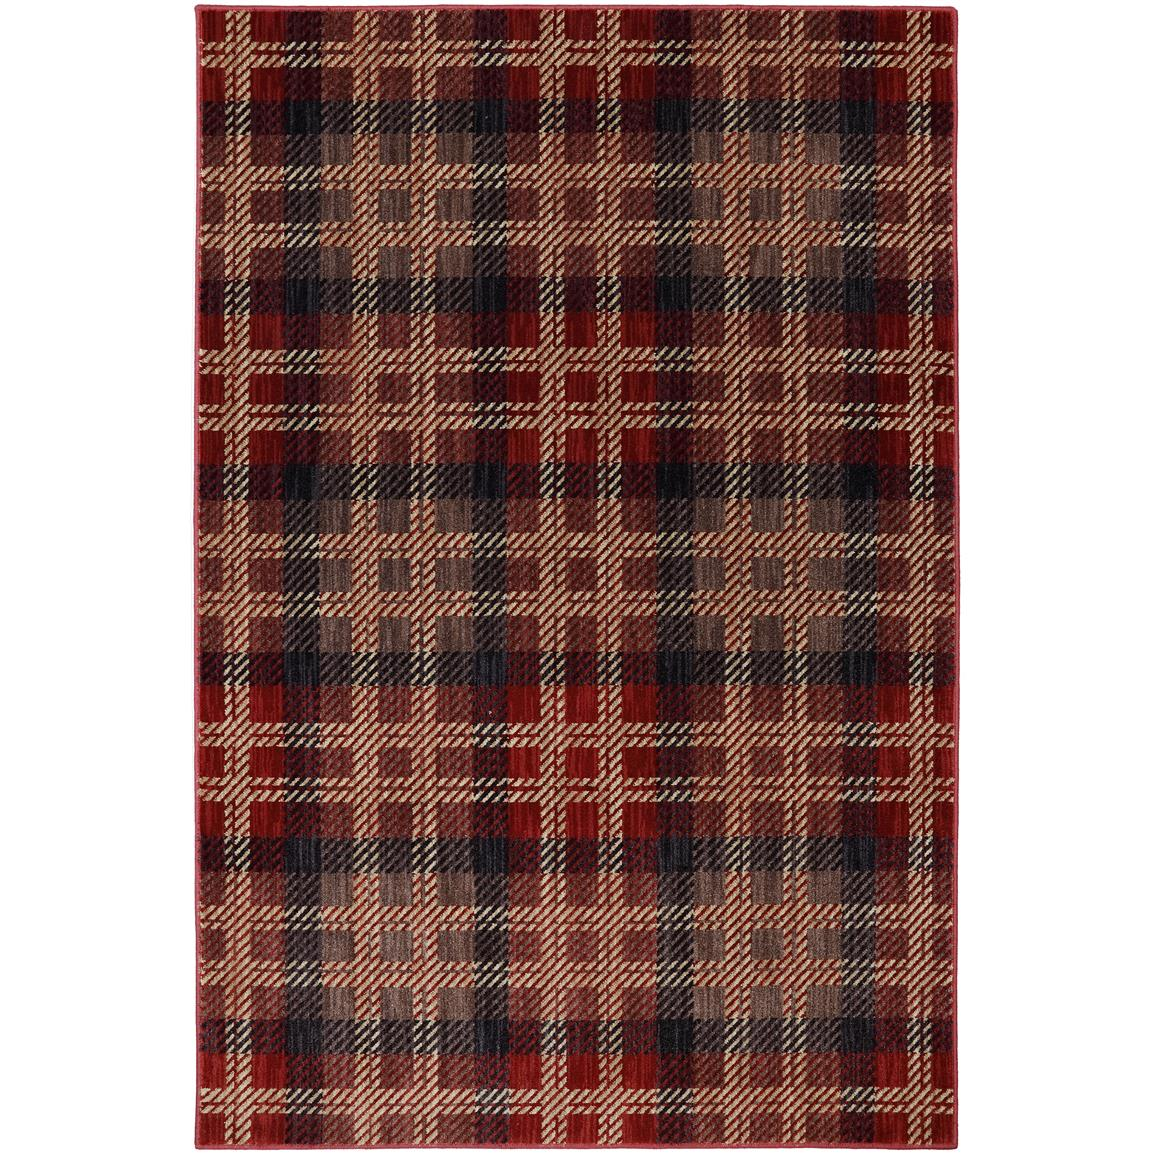 Billings Black Rug, Crimson